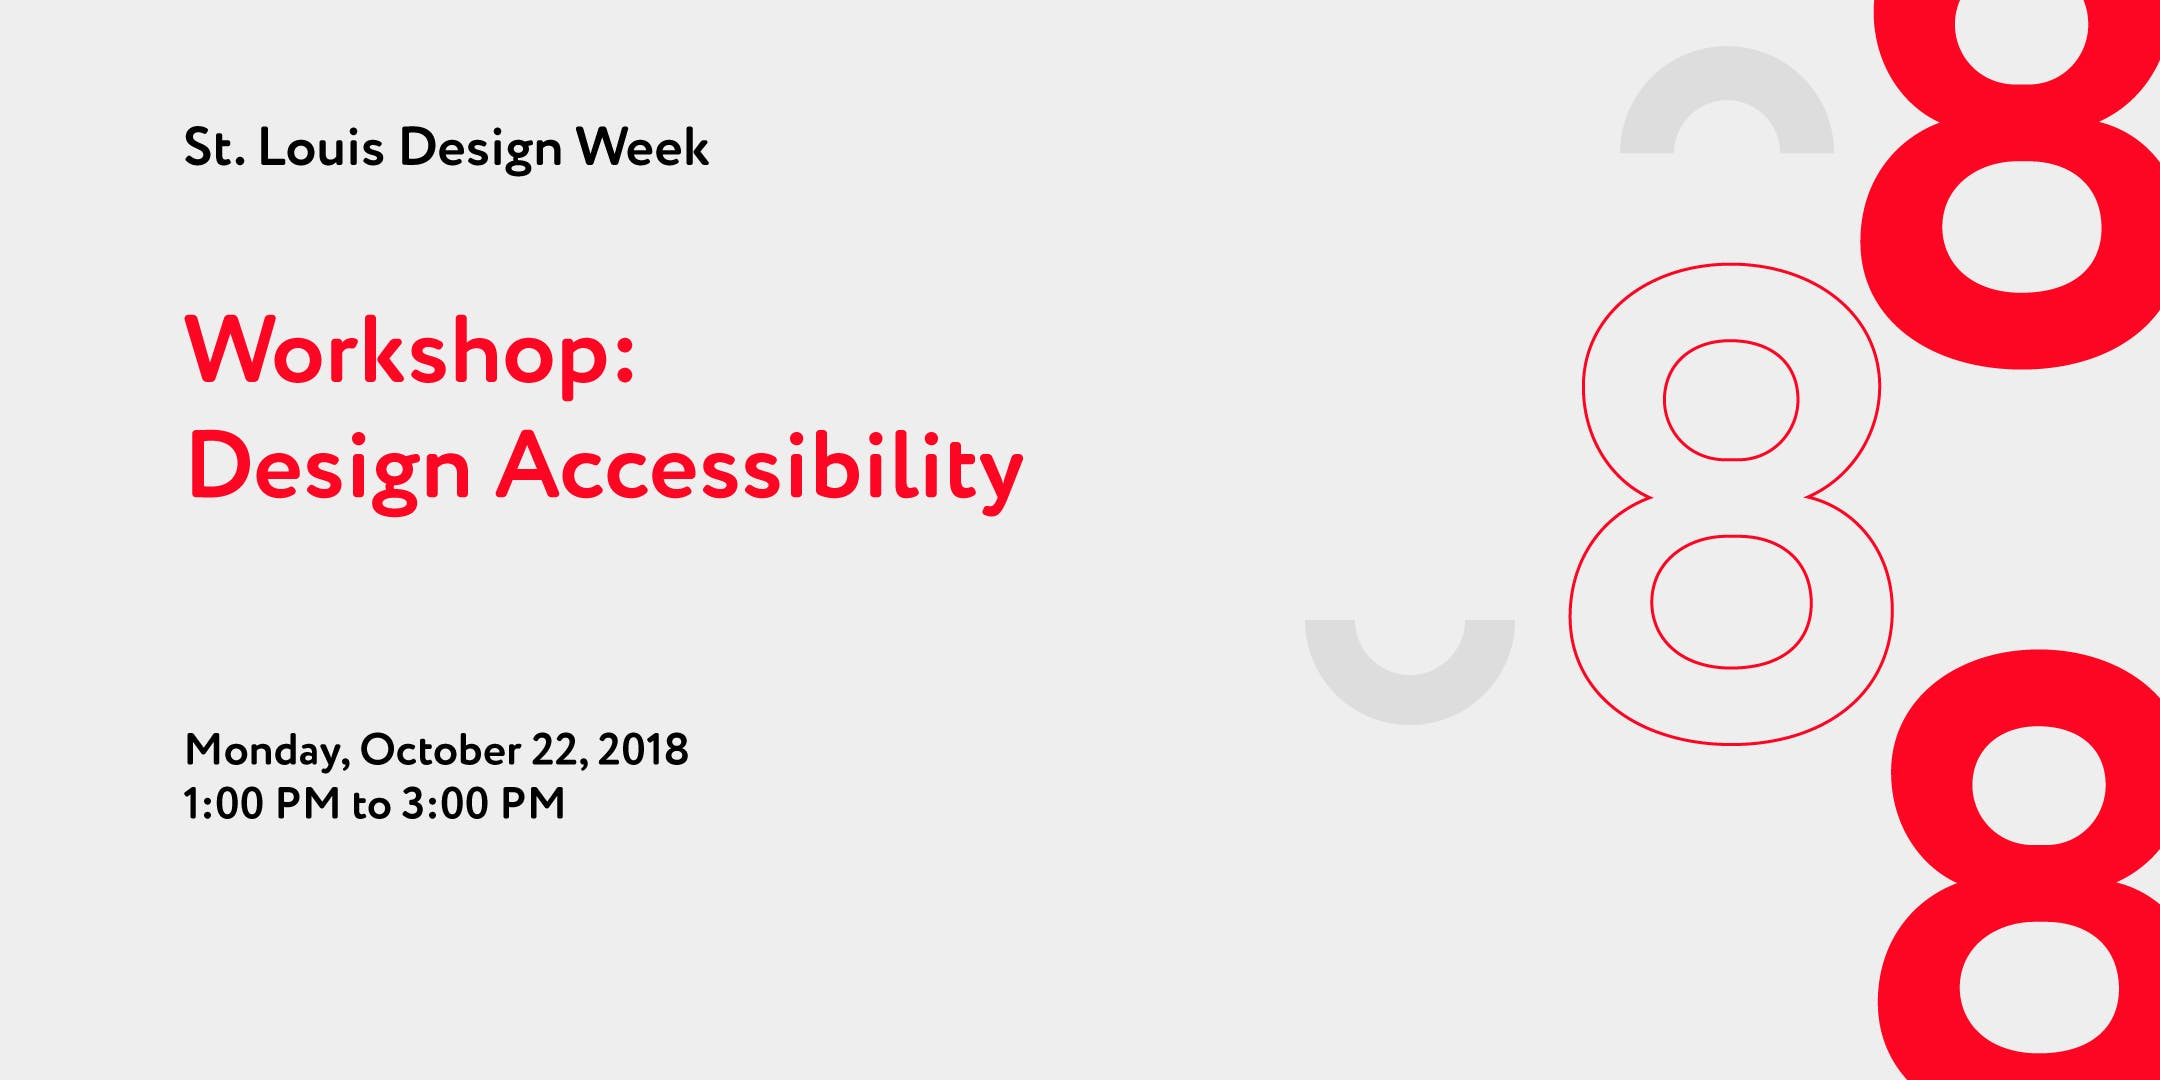 Workshop Design Accessibility 22 Oct 2018